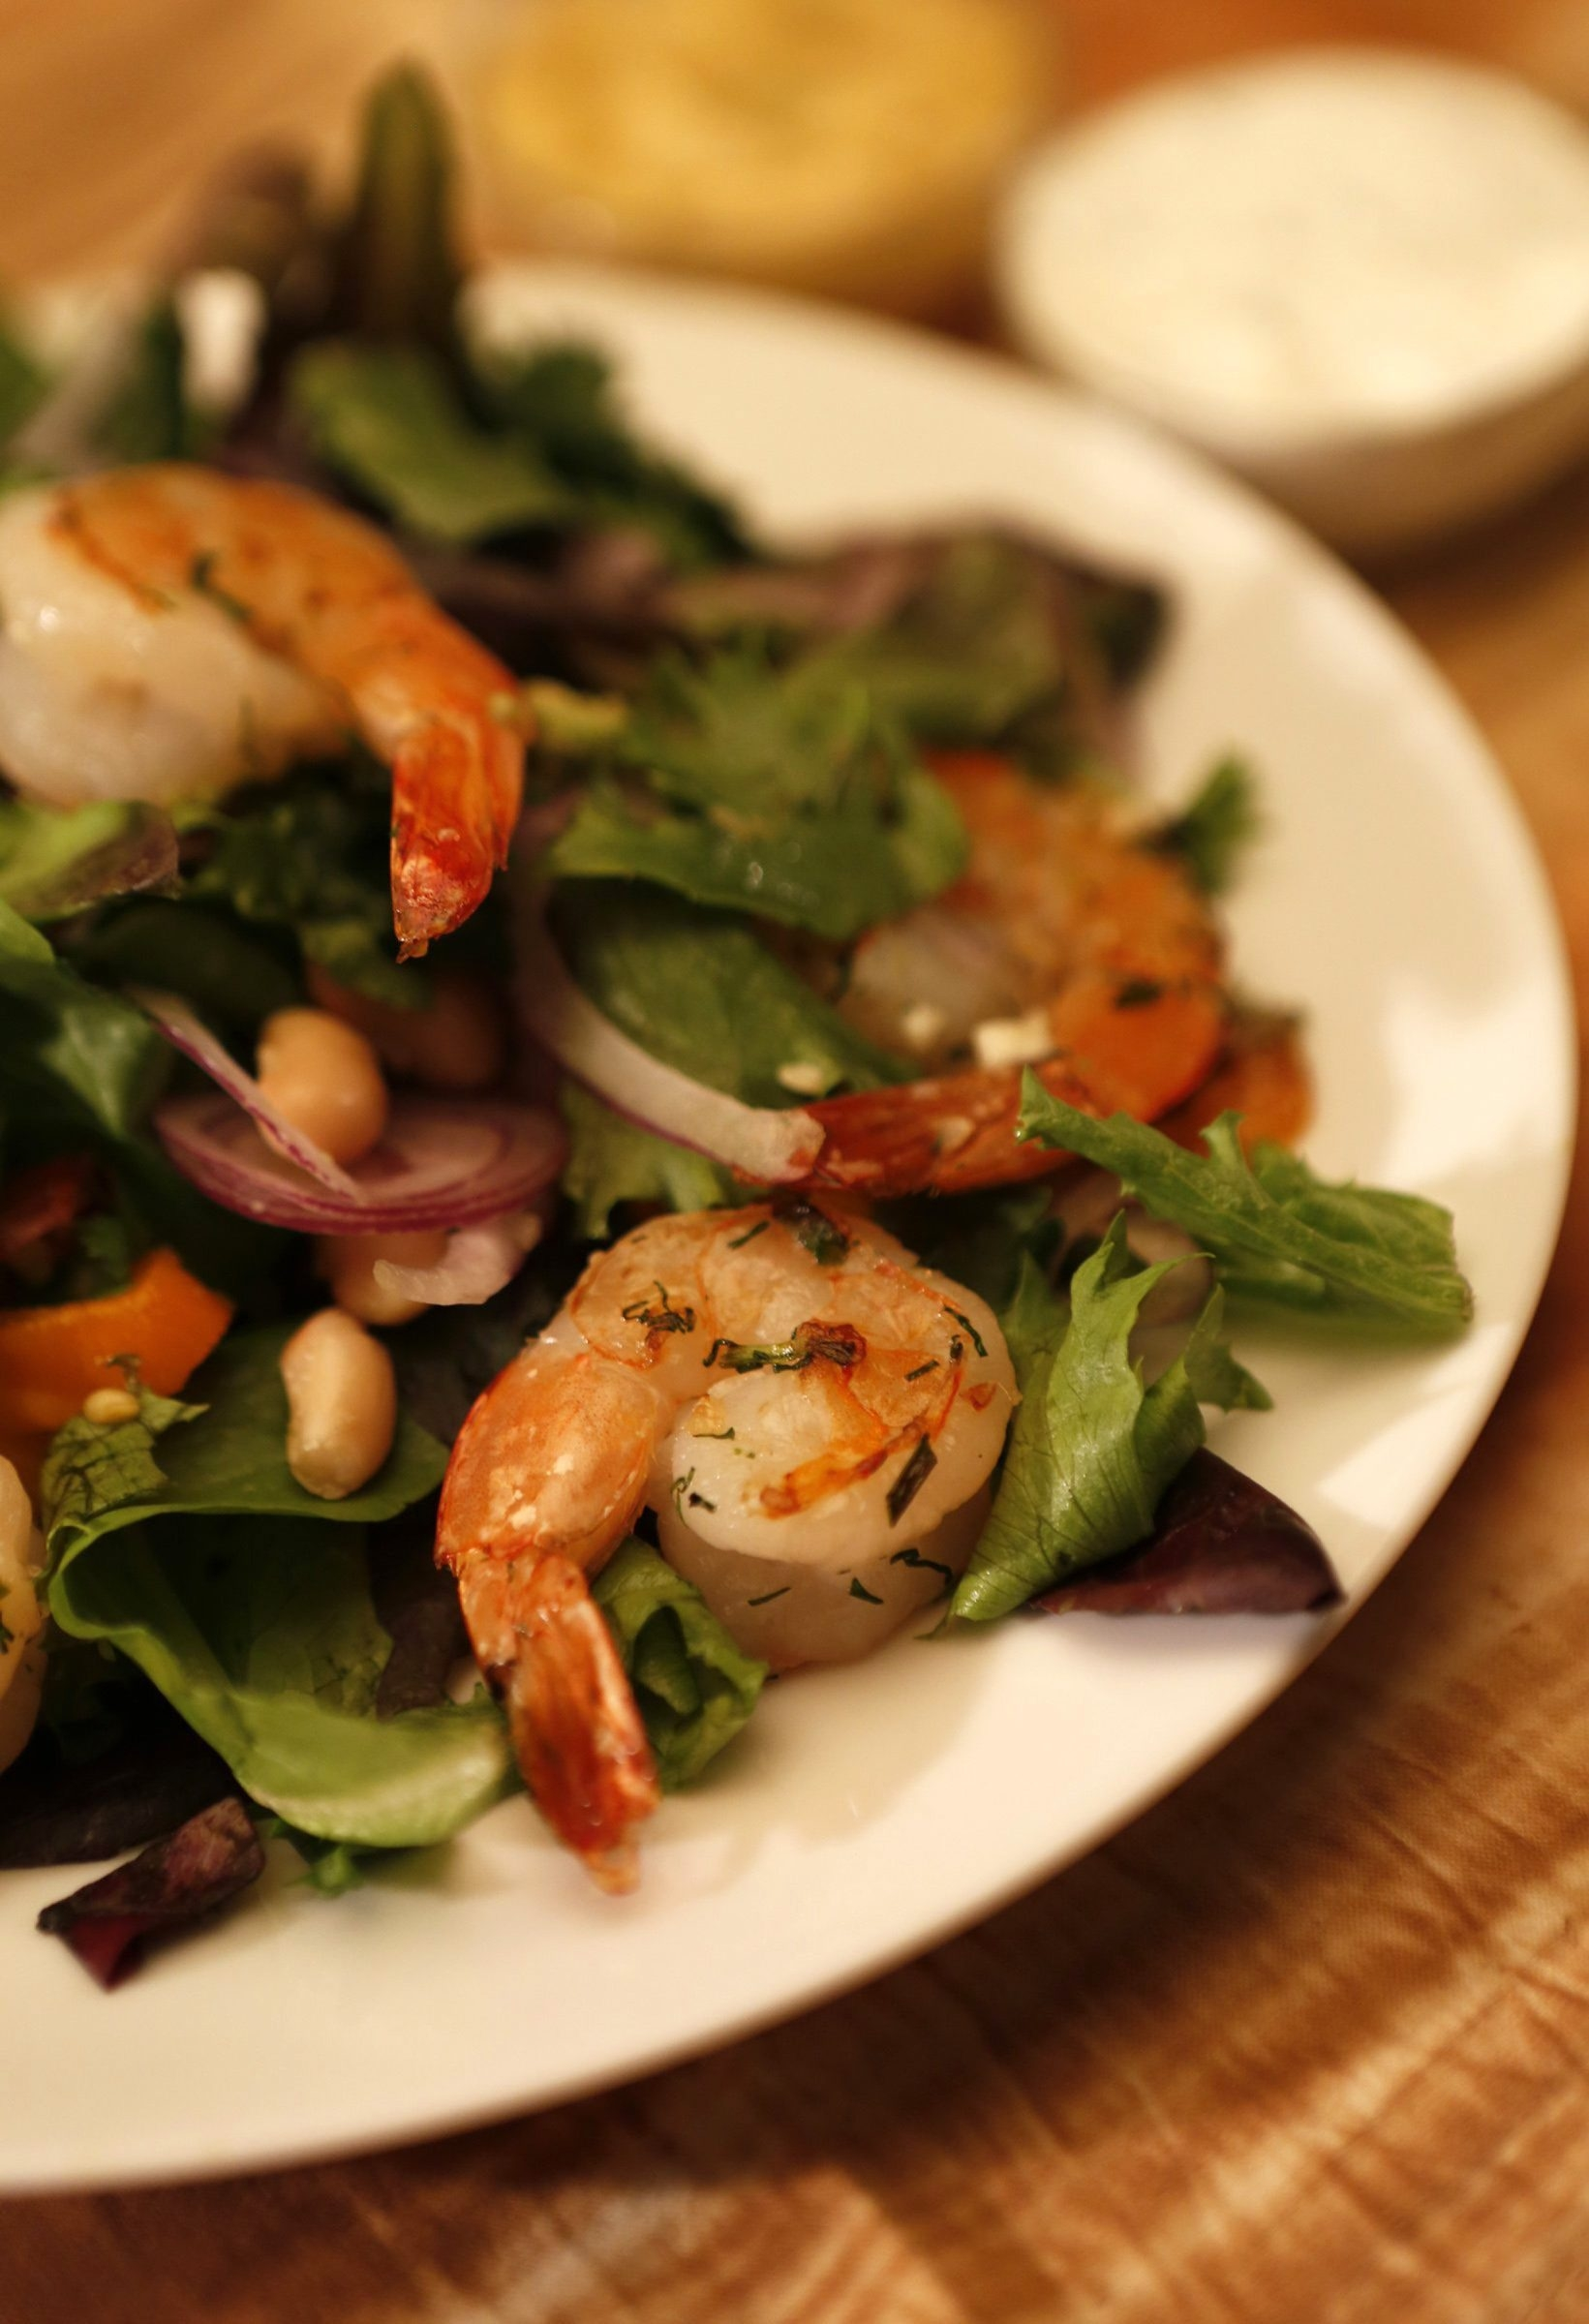 The restaurant at the Getty Center in Los Angeles shares its recipe for this shrimp salad.